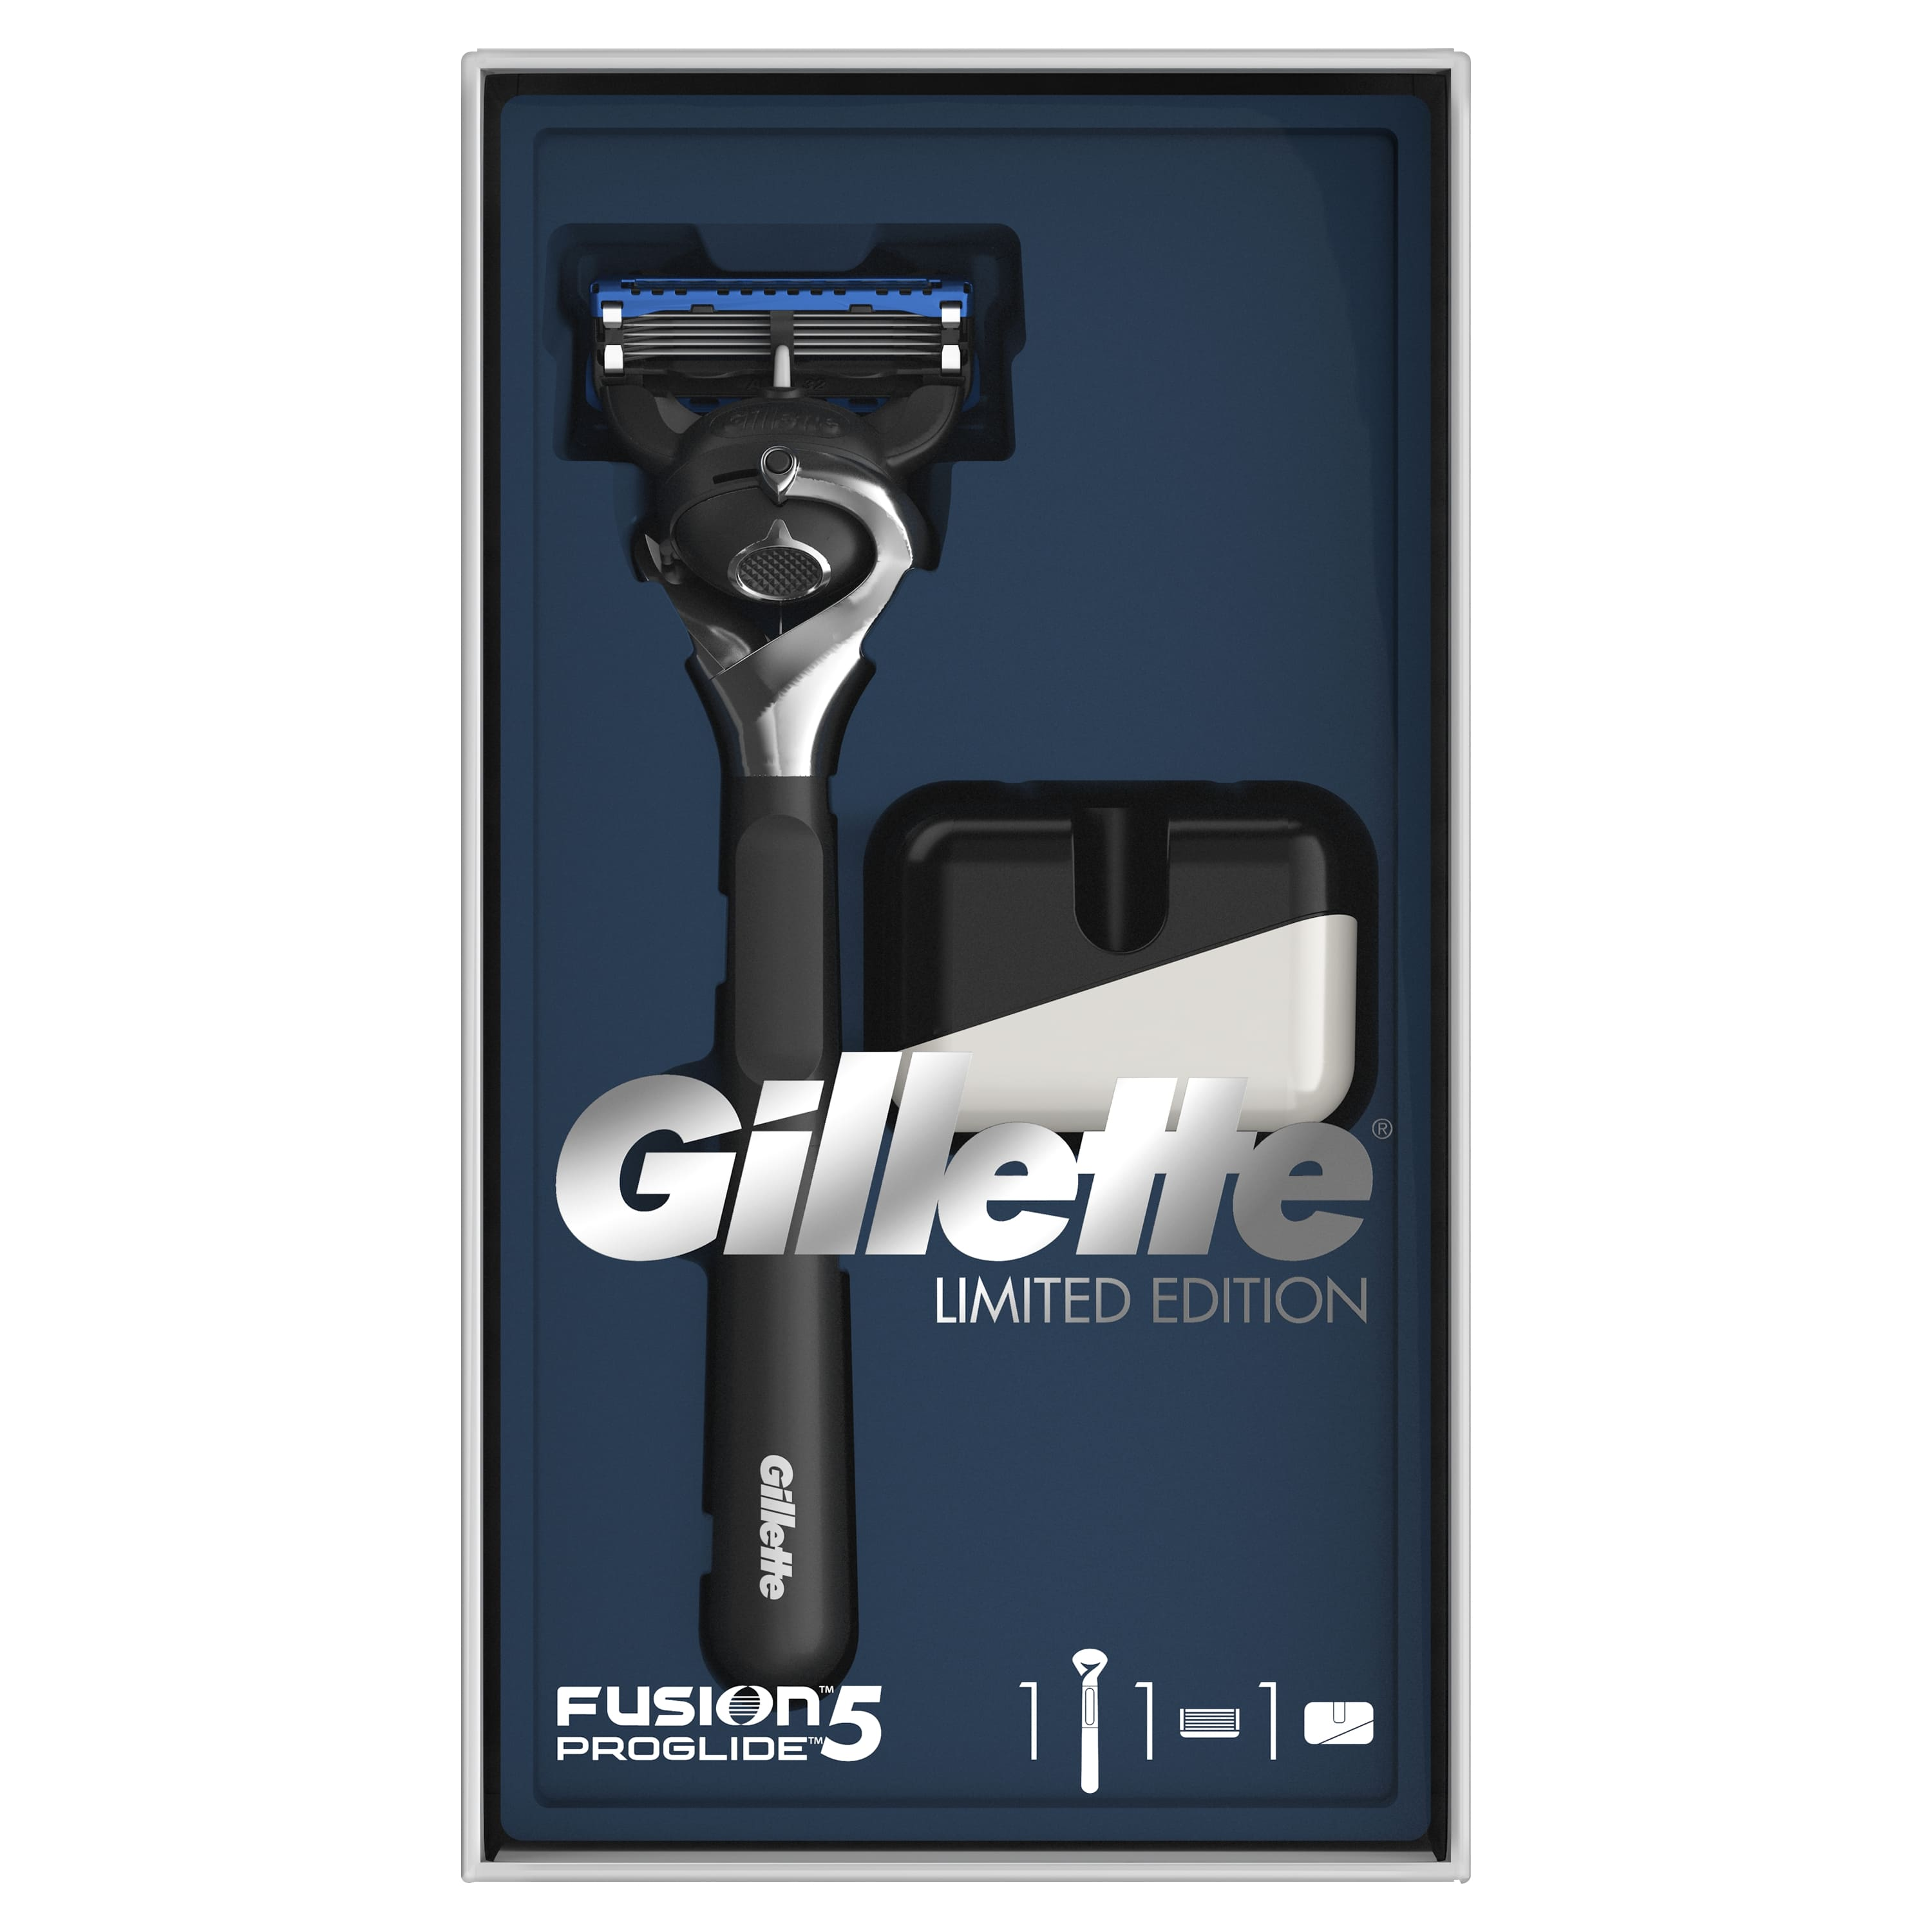 Gillette Fusion5 ProGlide Gift Set Limited Edition with Black Handle (Razor 1 Removable Cassette + Stand)